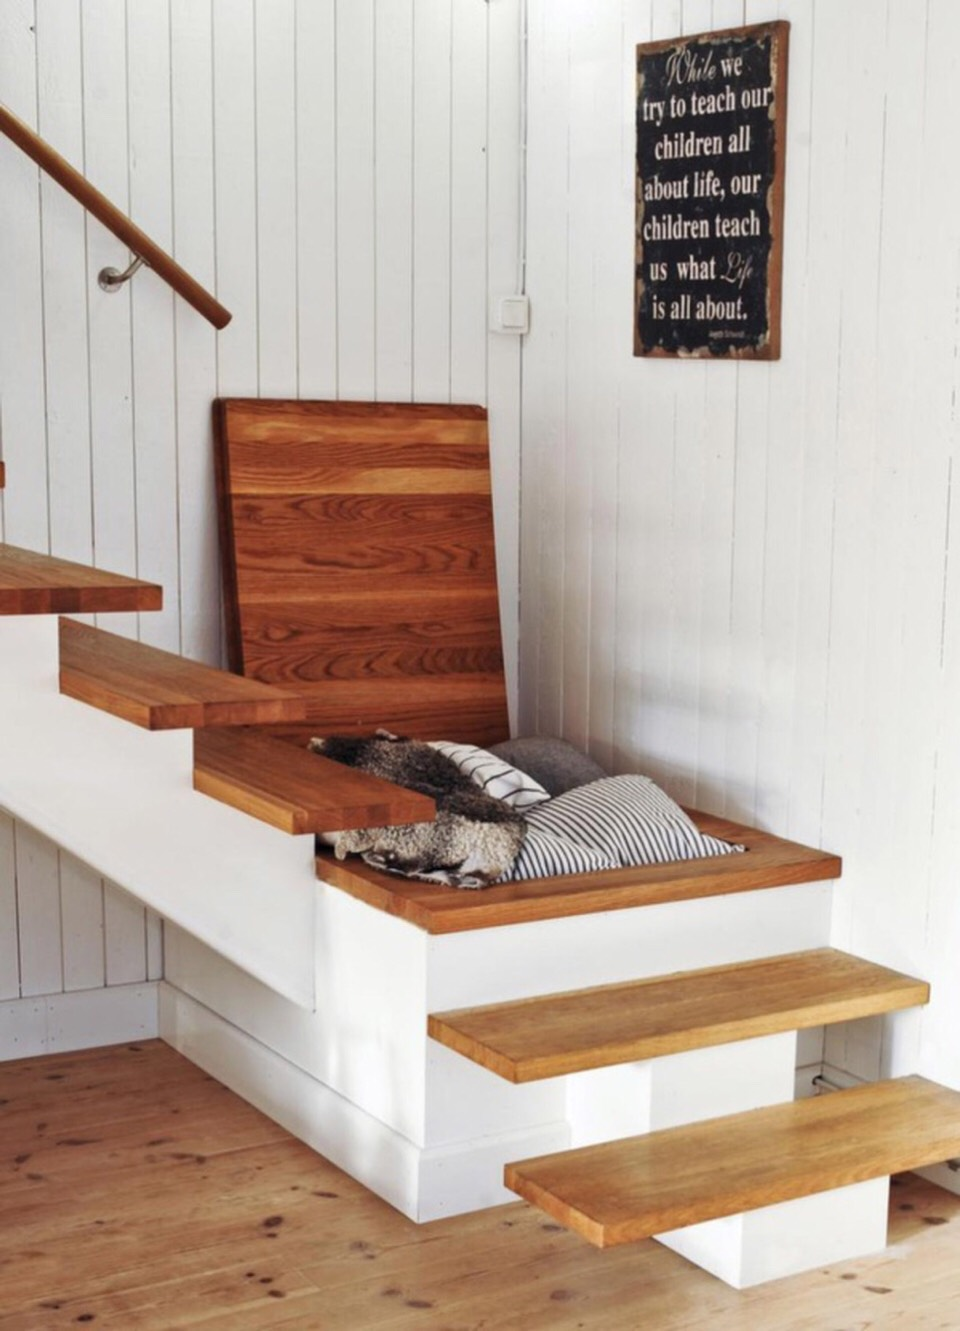 Make use of items that can have storage potential. This can reduce clutter in a room.